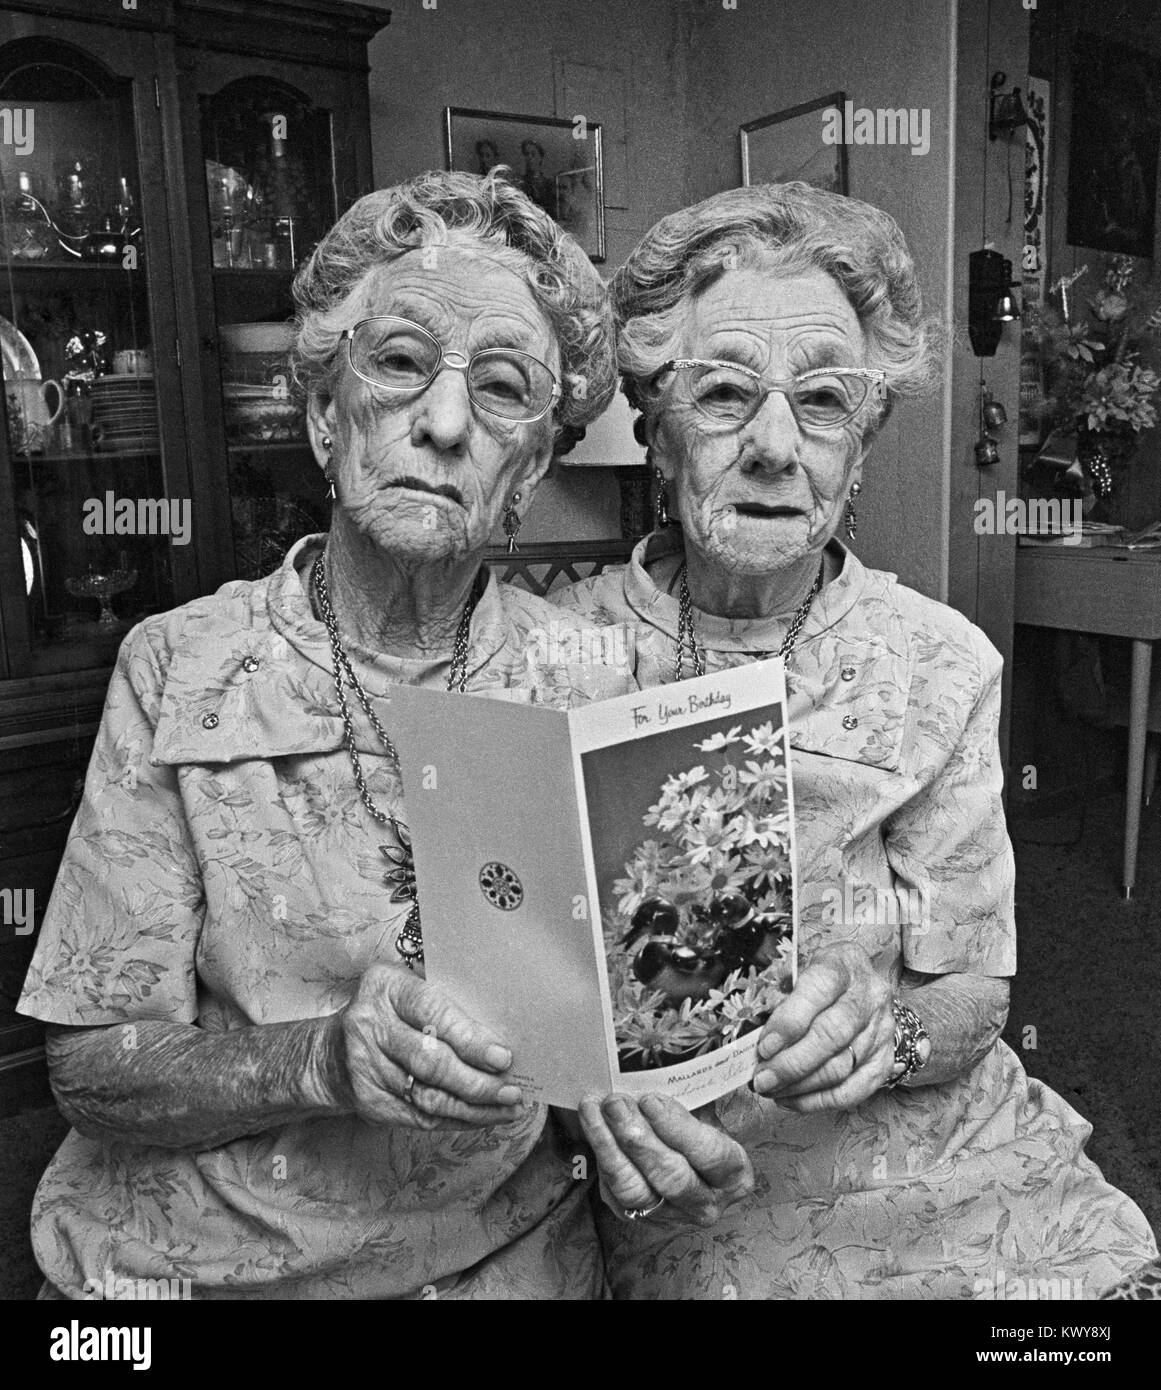 The Roberts Twins, celebrating their 100th birthday in Truth or Consequences, New Mexico - Stock Image